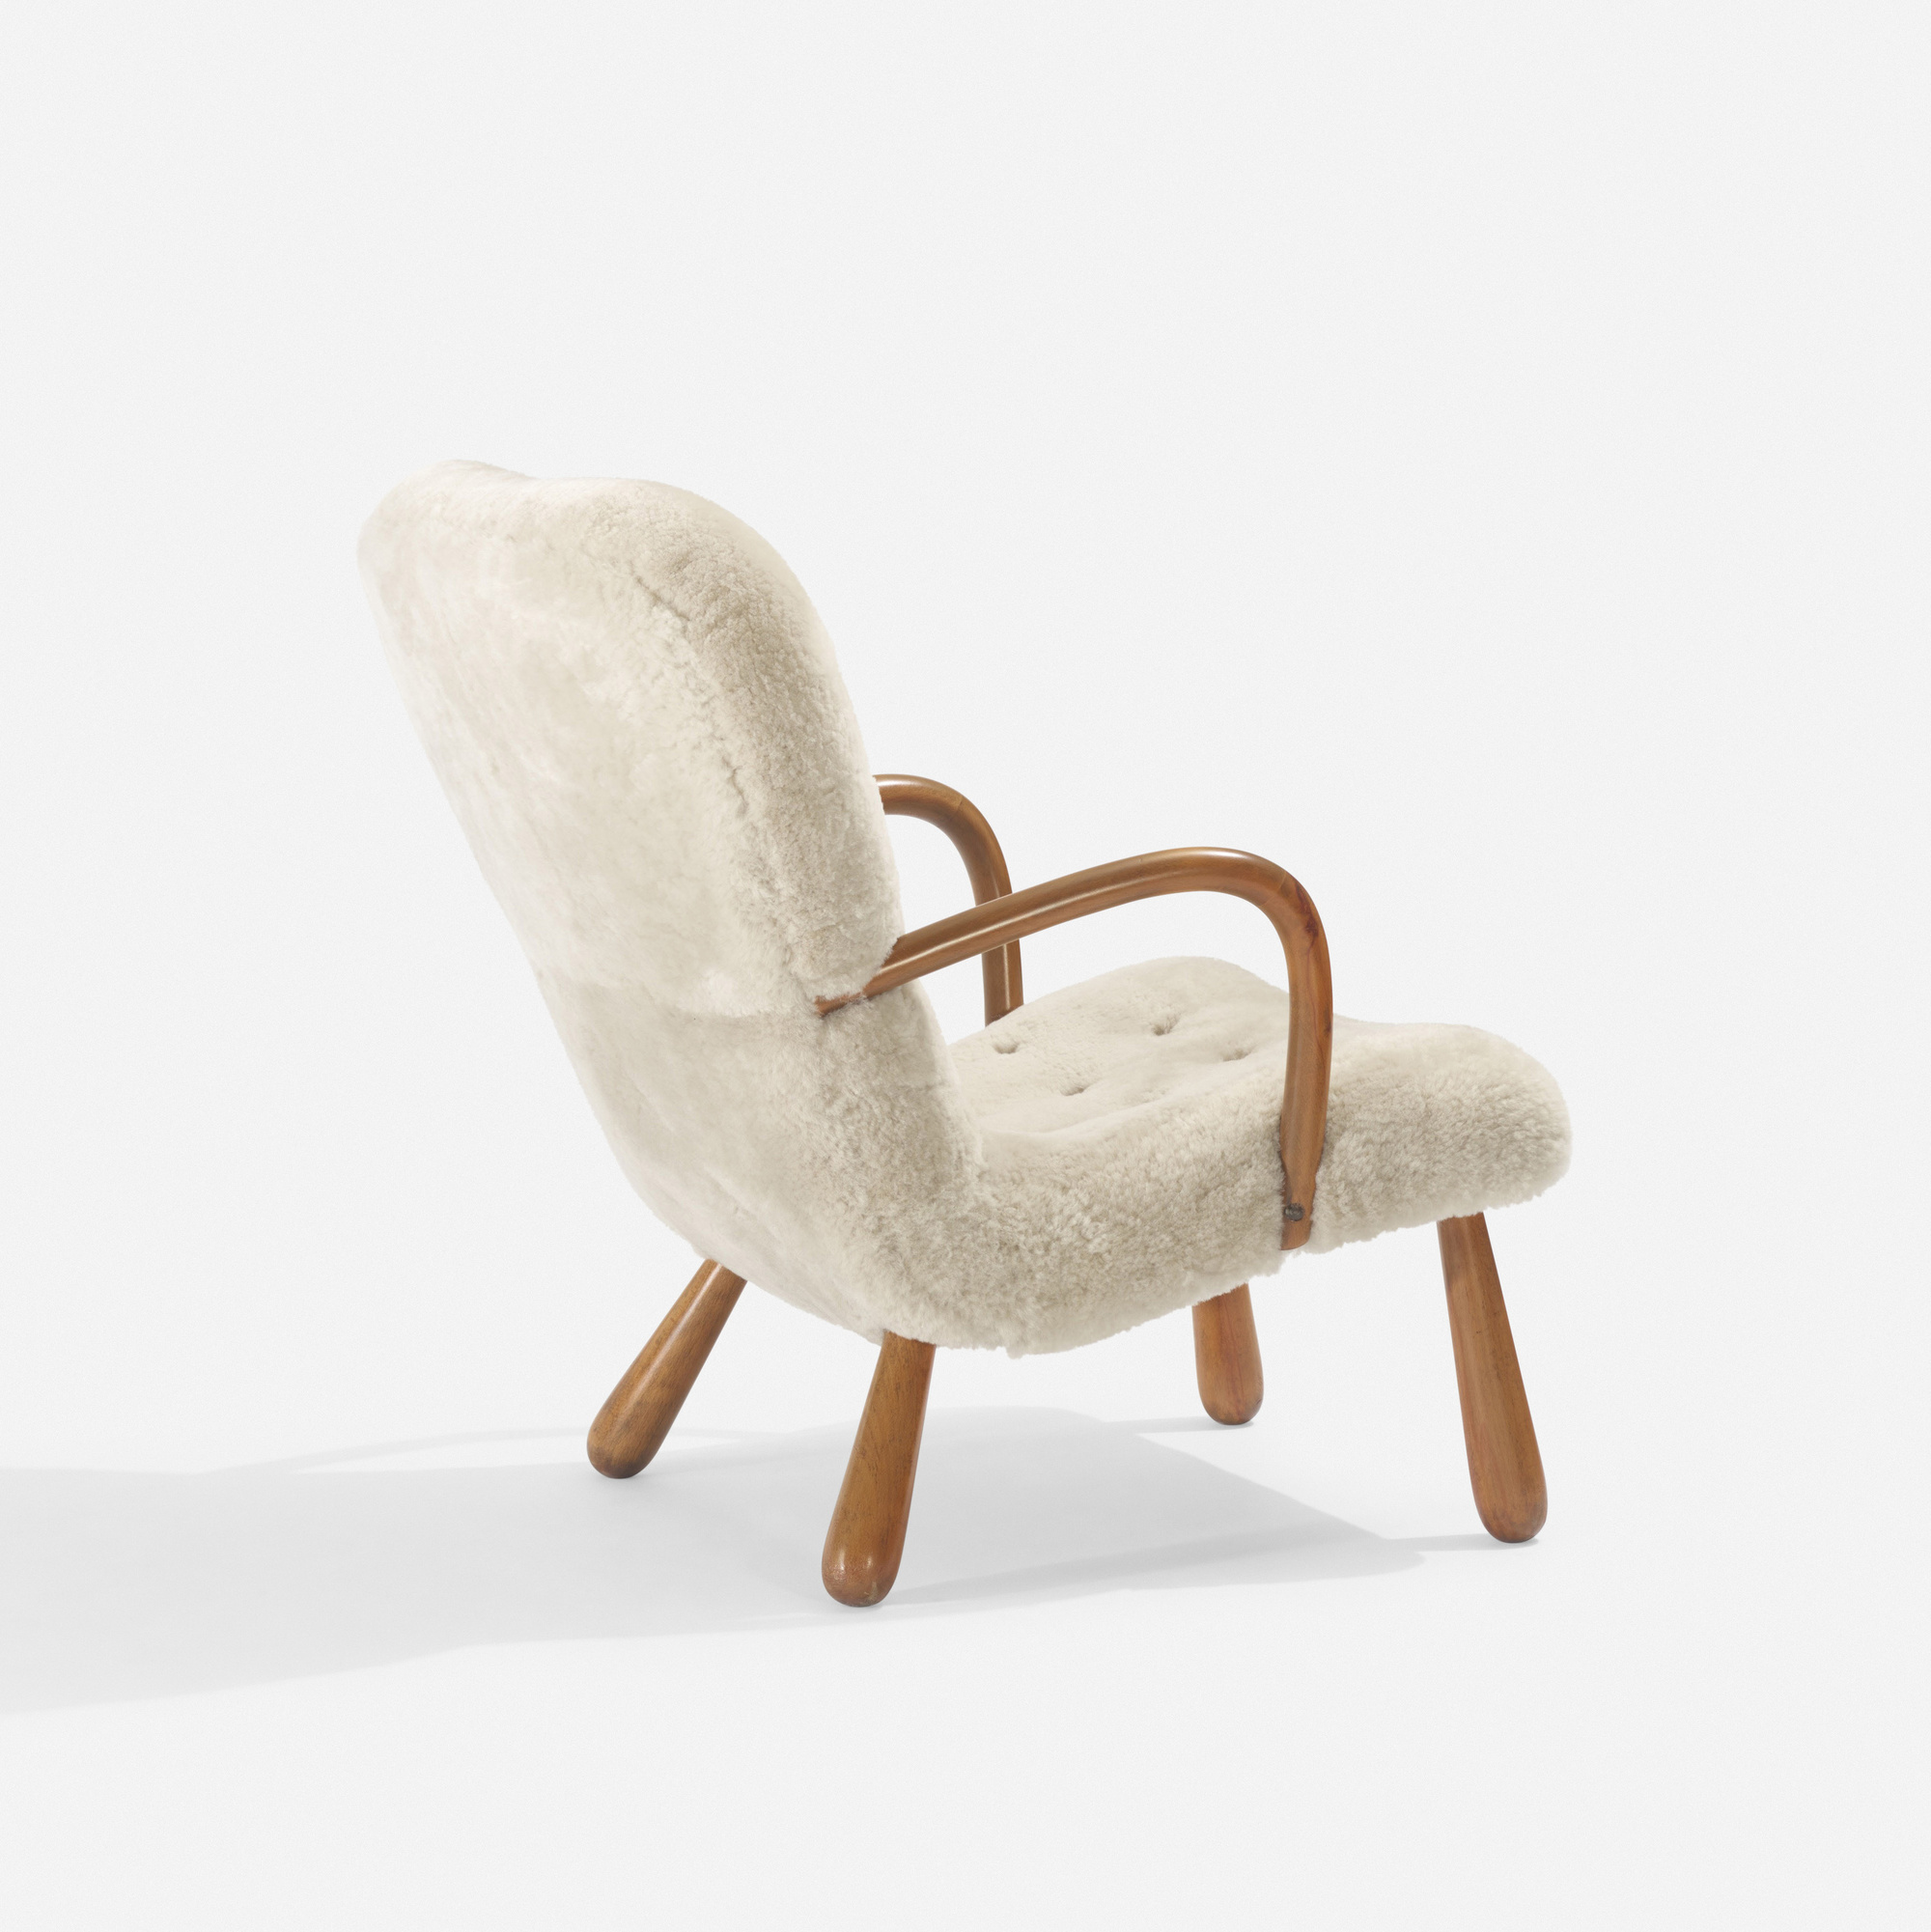 104: Philip Arctander / lounge chair (2 of 2)